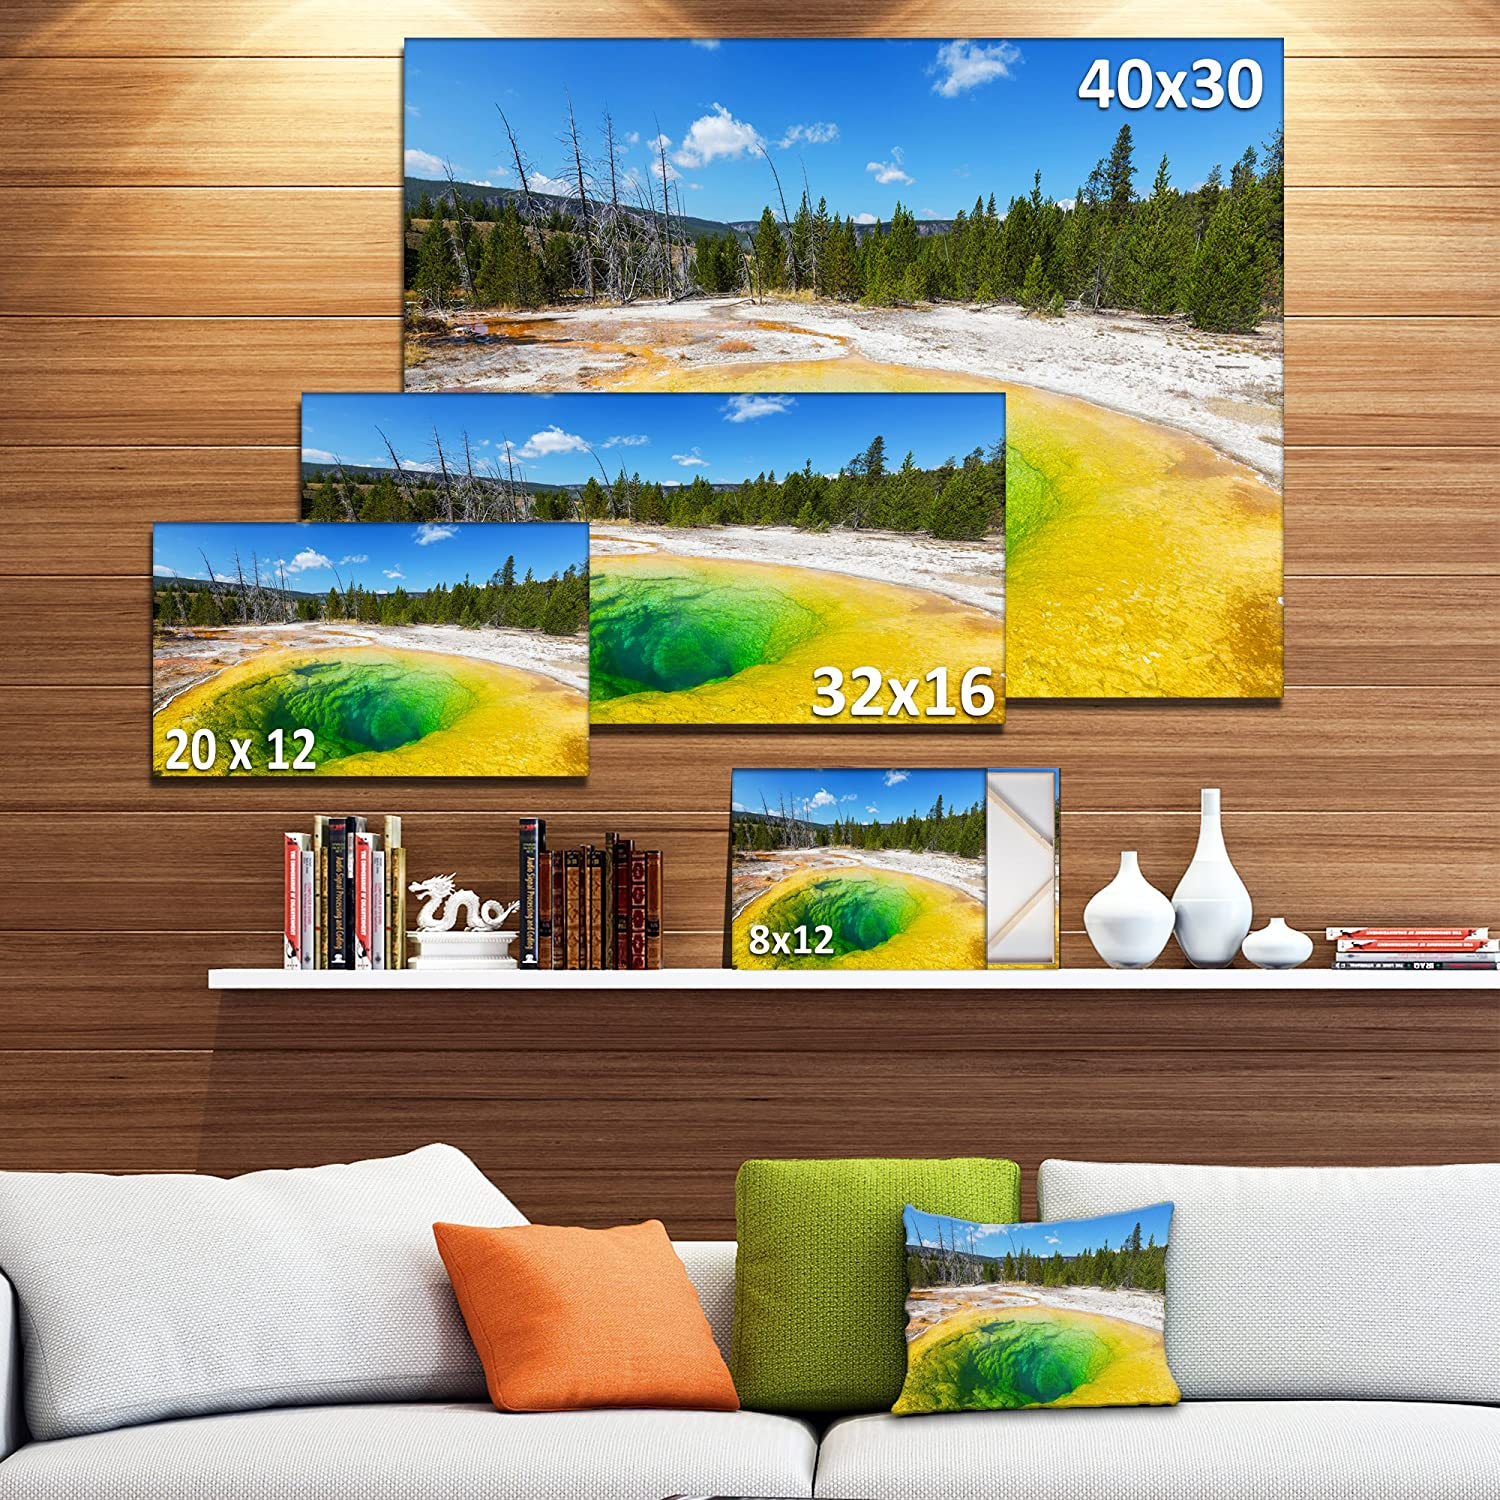 Morning Glory Pool Close Up Landscape Photography Canvas Print Amazon In Home Kitchen